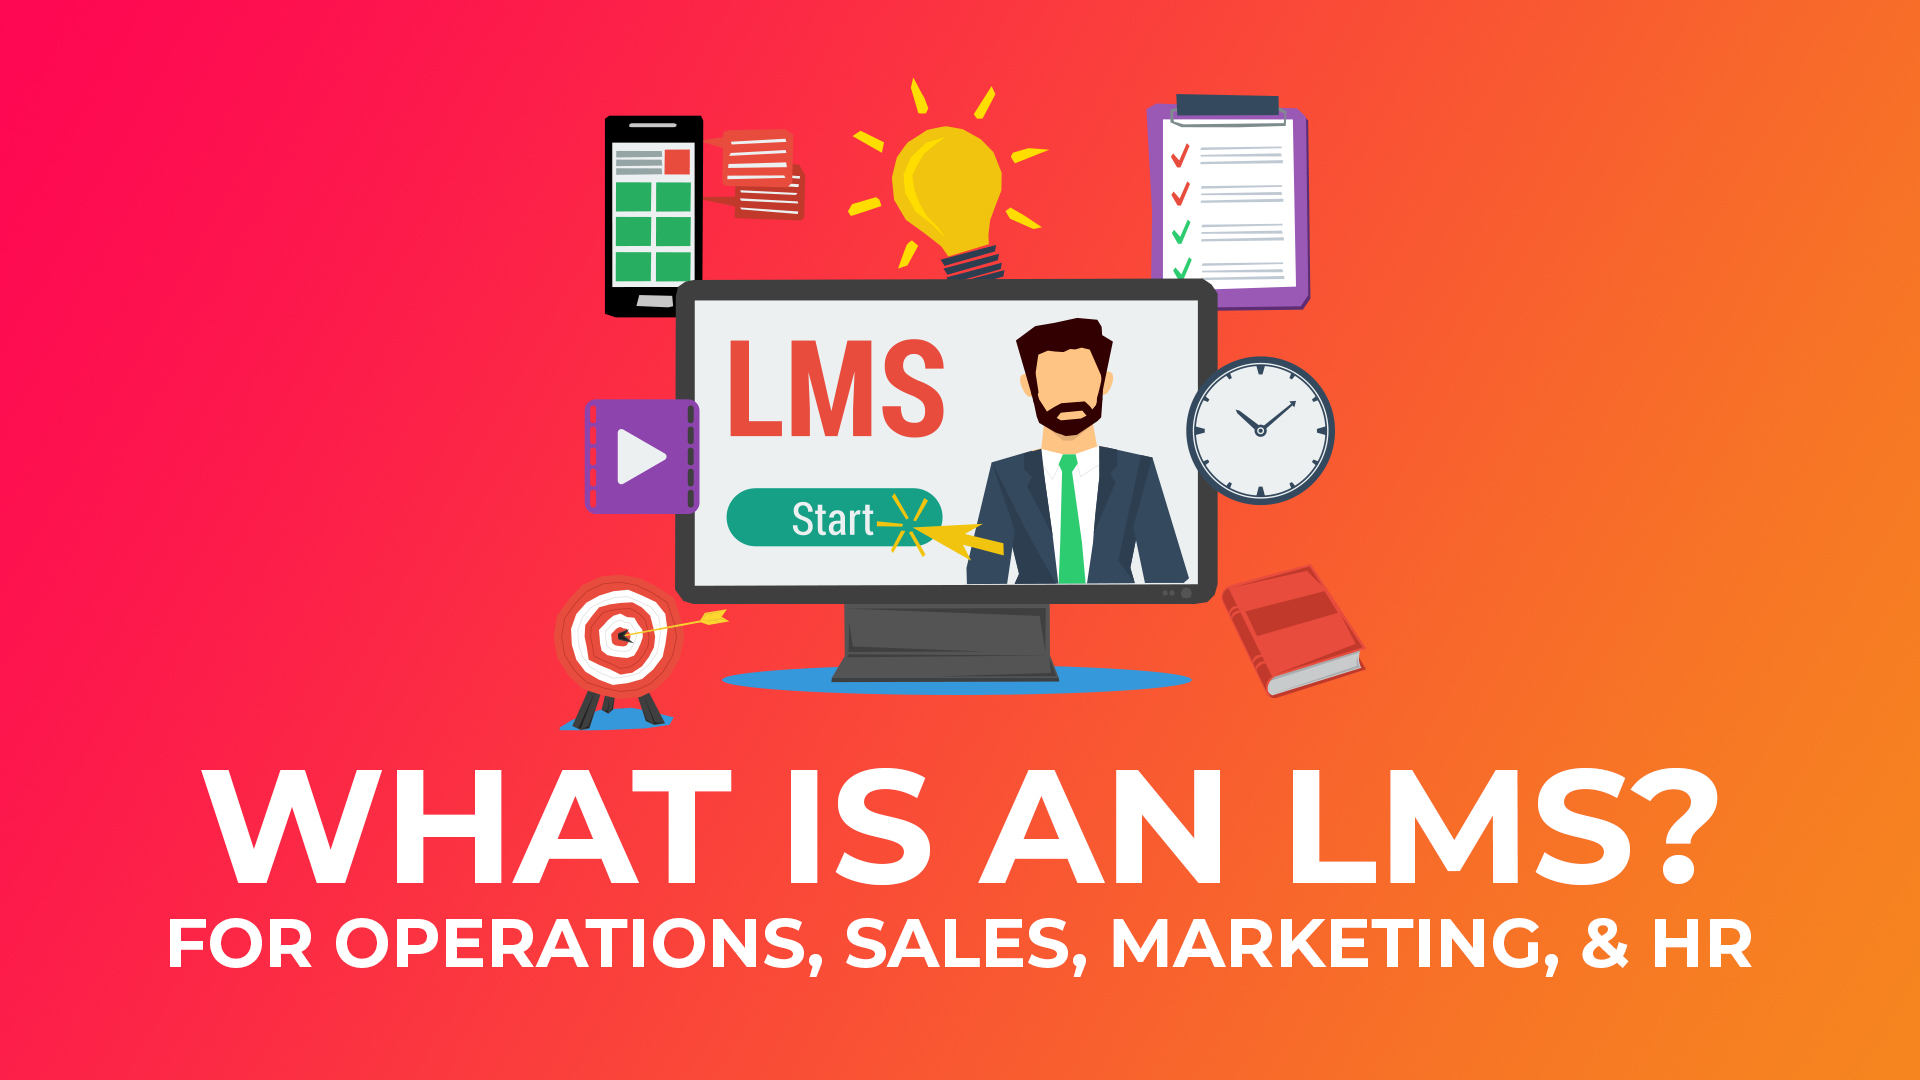 What is an LMS